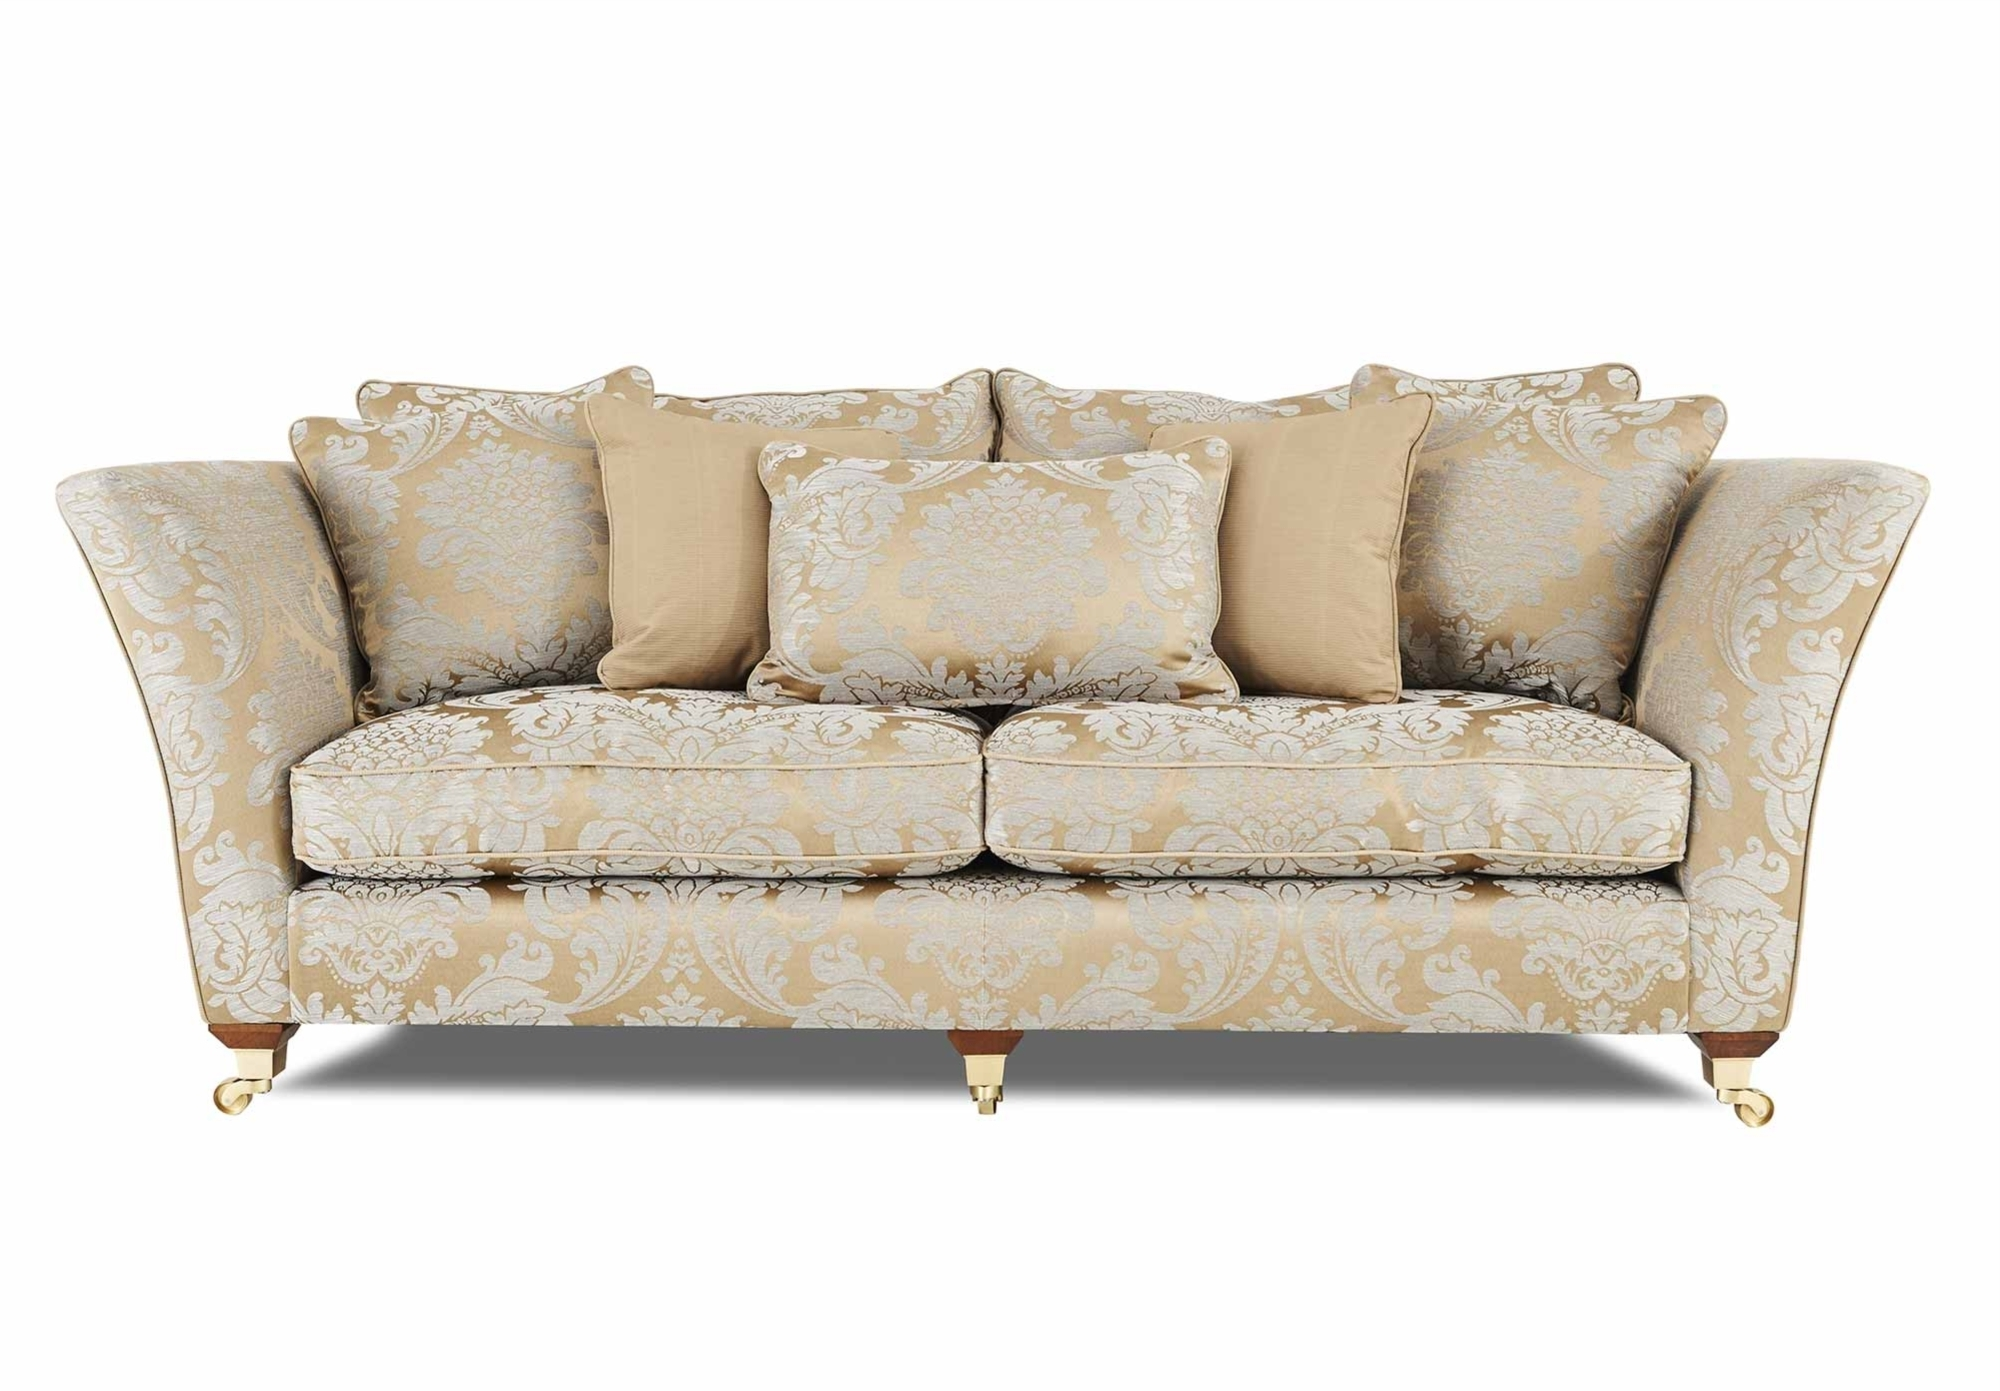 Furniture : Contemporary Modern Tufted Sofa Delano 120 Tufted Inside Well Known Kijiji Kitchener Sectional Sofas (View 6 of 20)